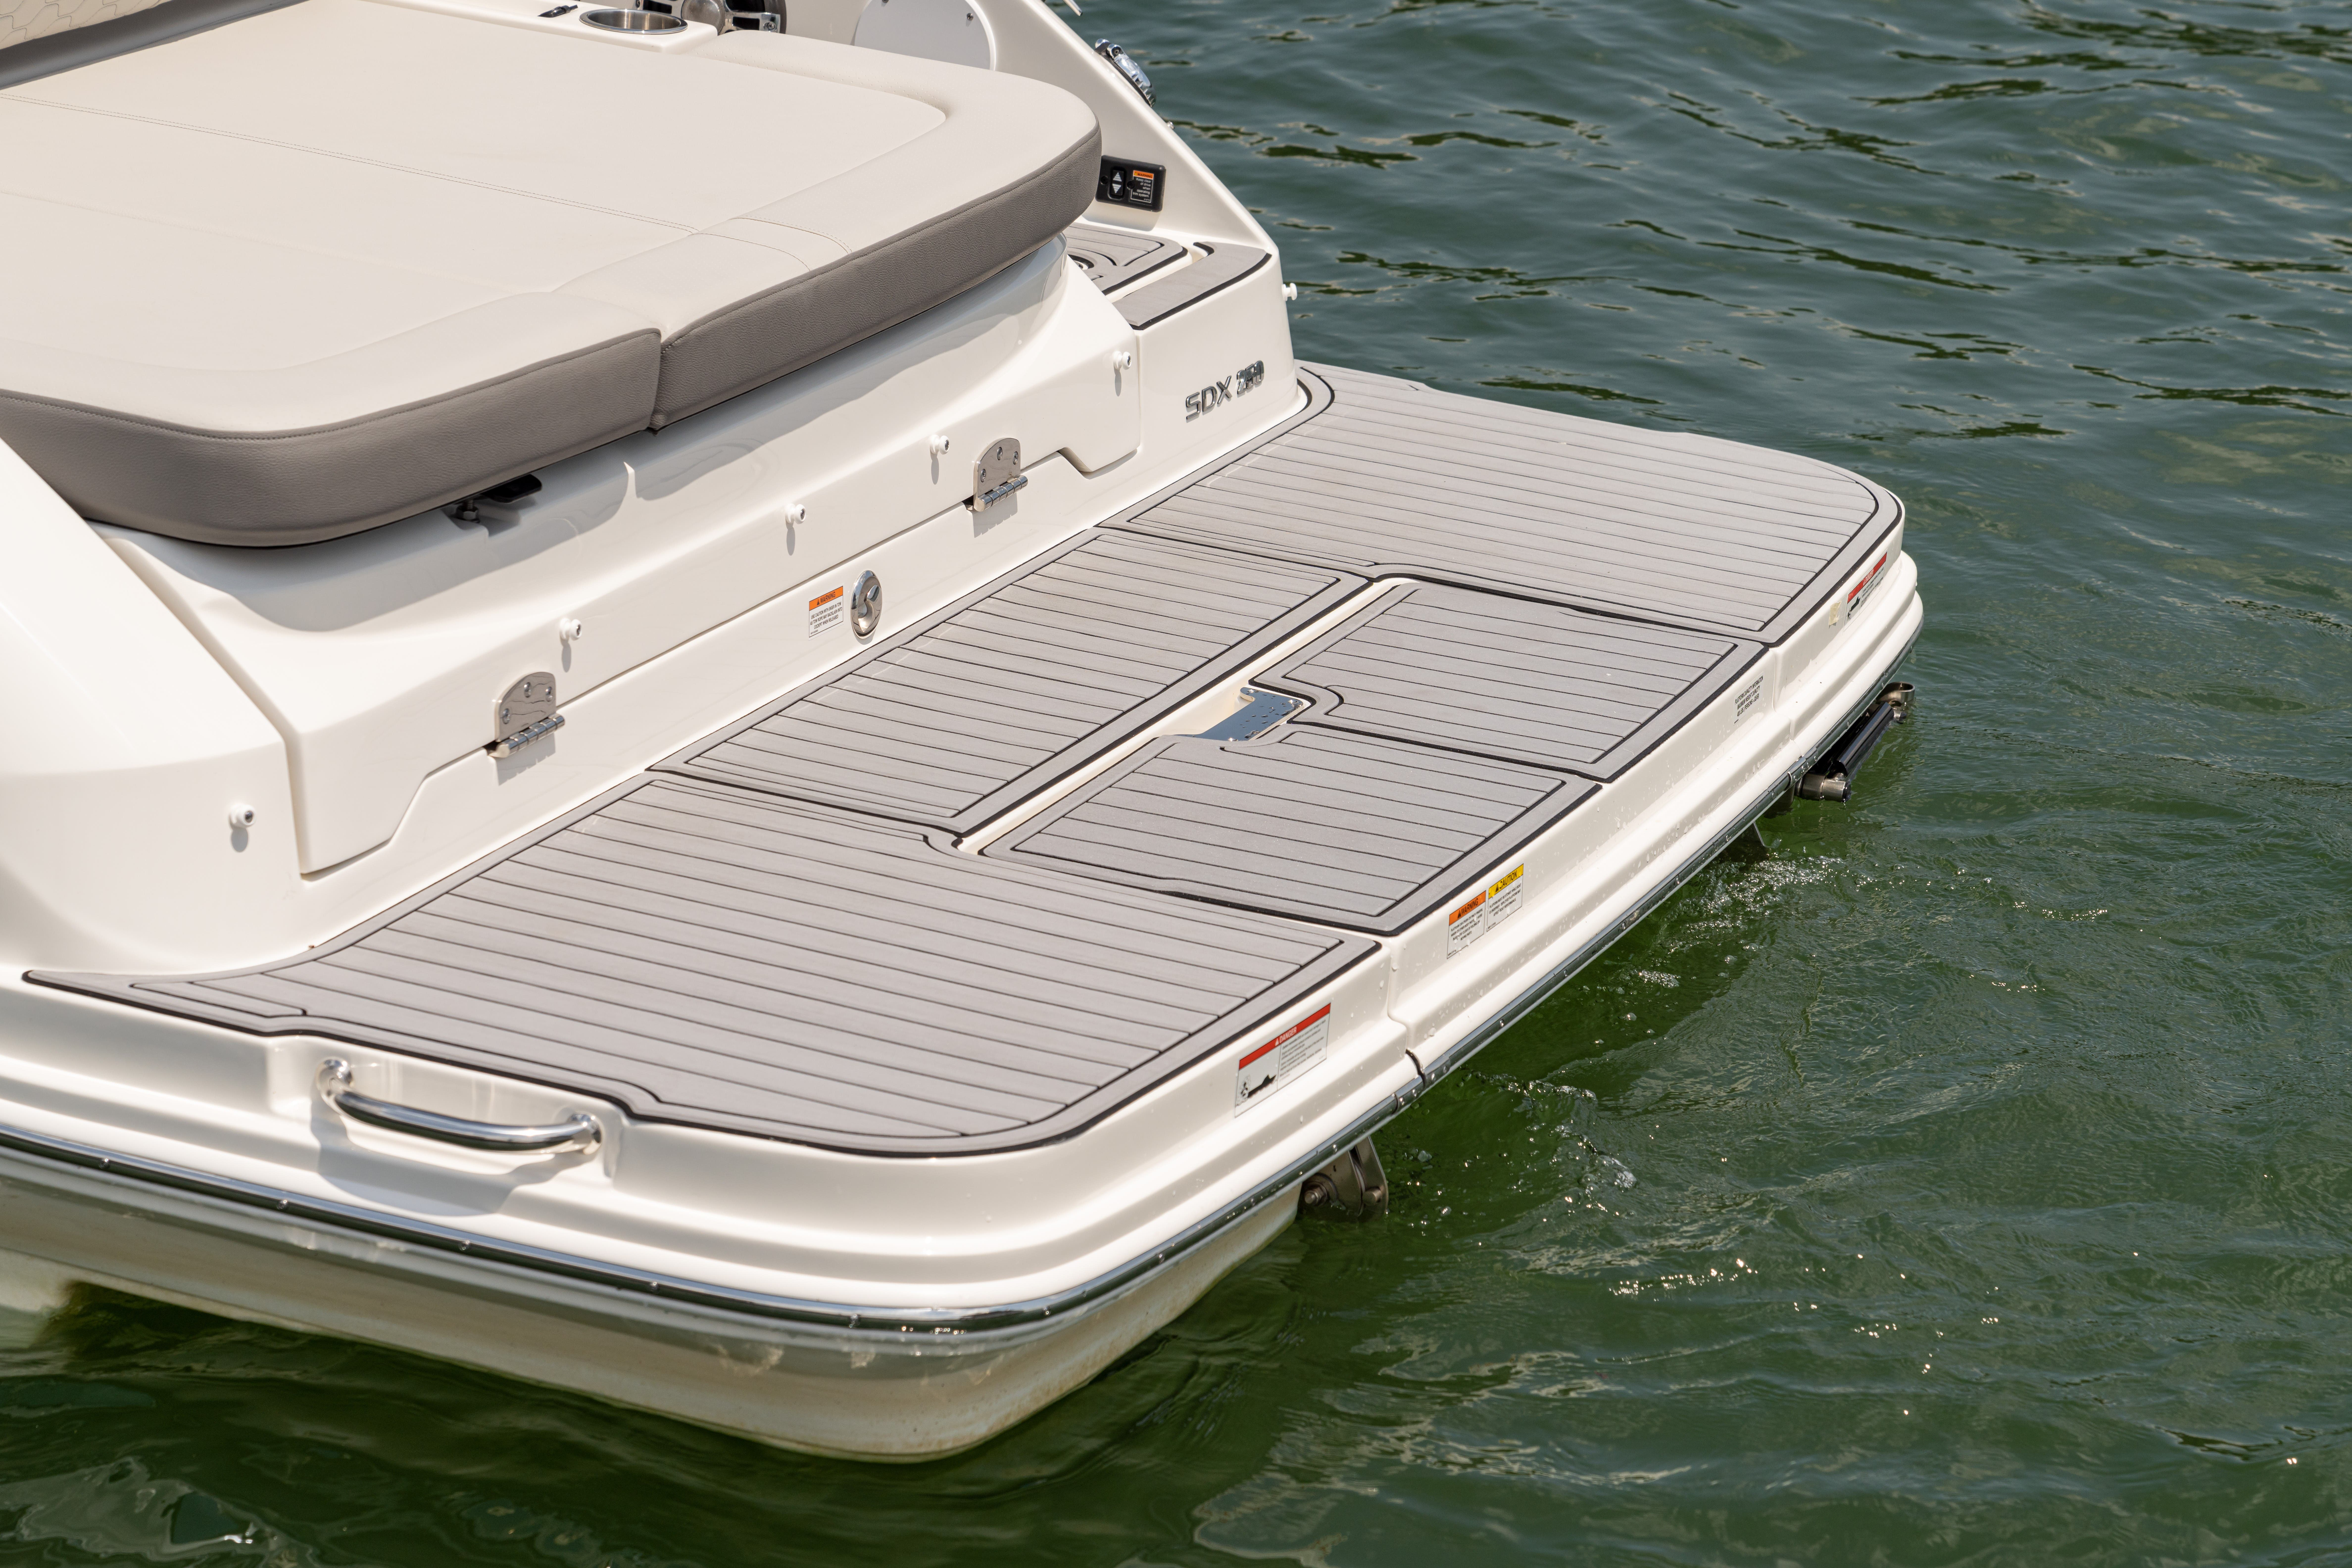 2022 Sea Ray boat for sale, model of the boat is 250sdx & Image # 6 of 6